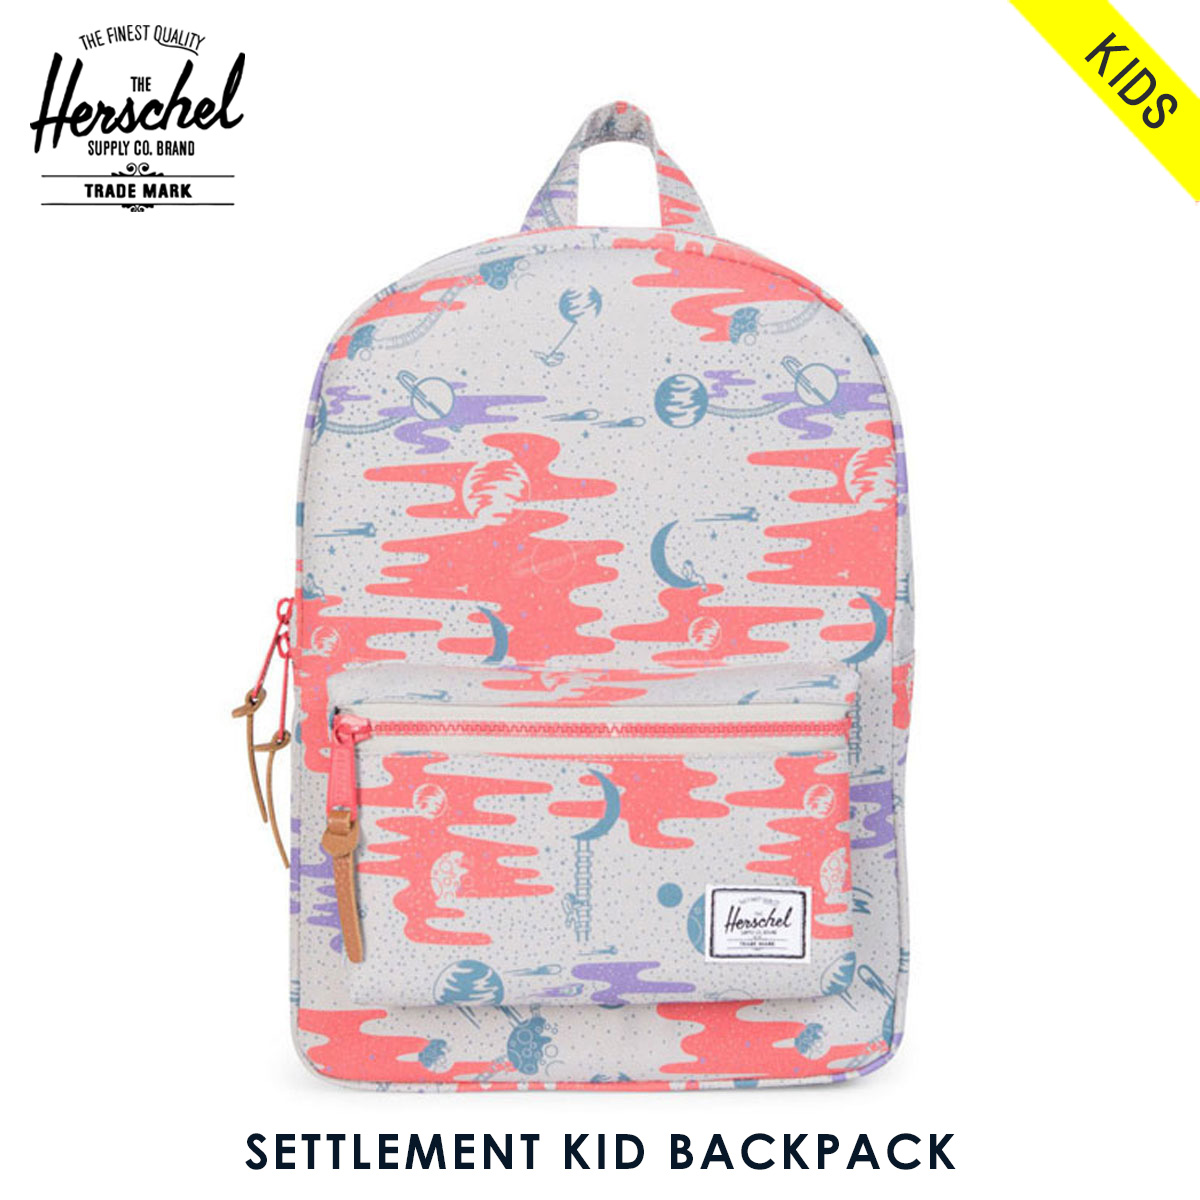 eb4220a950e Herschel supply Herschel Supply regular sale shop bag rucksack BACKPACK KID  10074-01211-OS SETTLEMENT SPACE EXPLORERS GIRLS 20P03Dec16